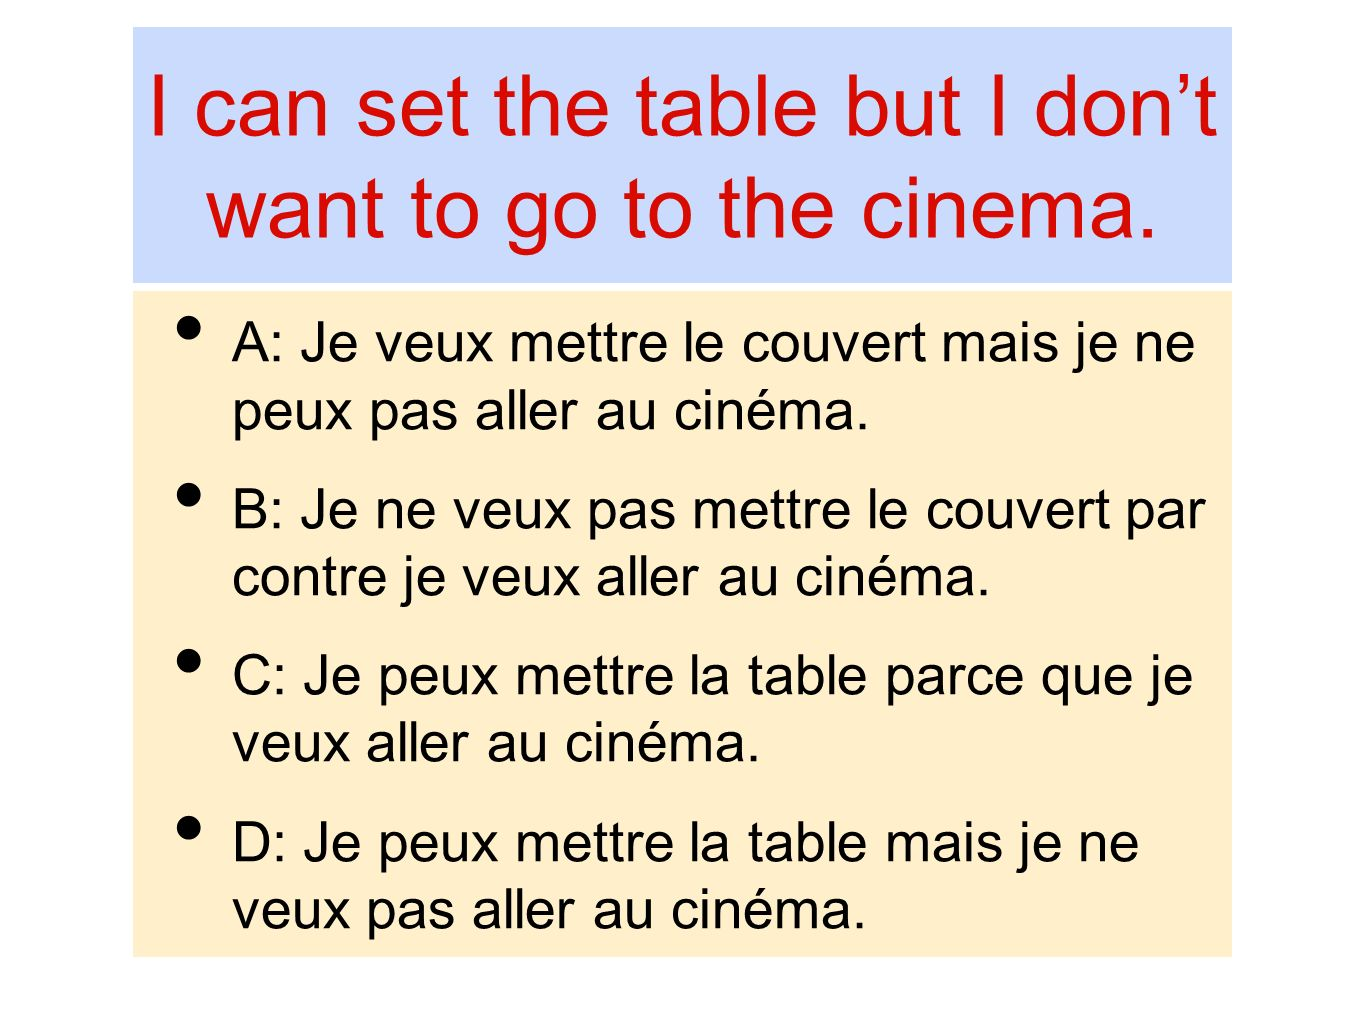 I can set the table but I don't want to go to the cinema.